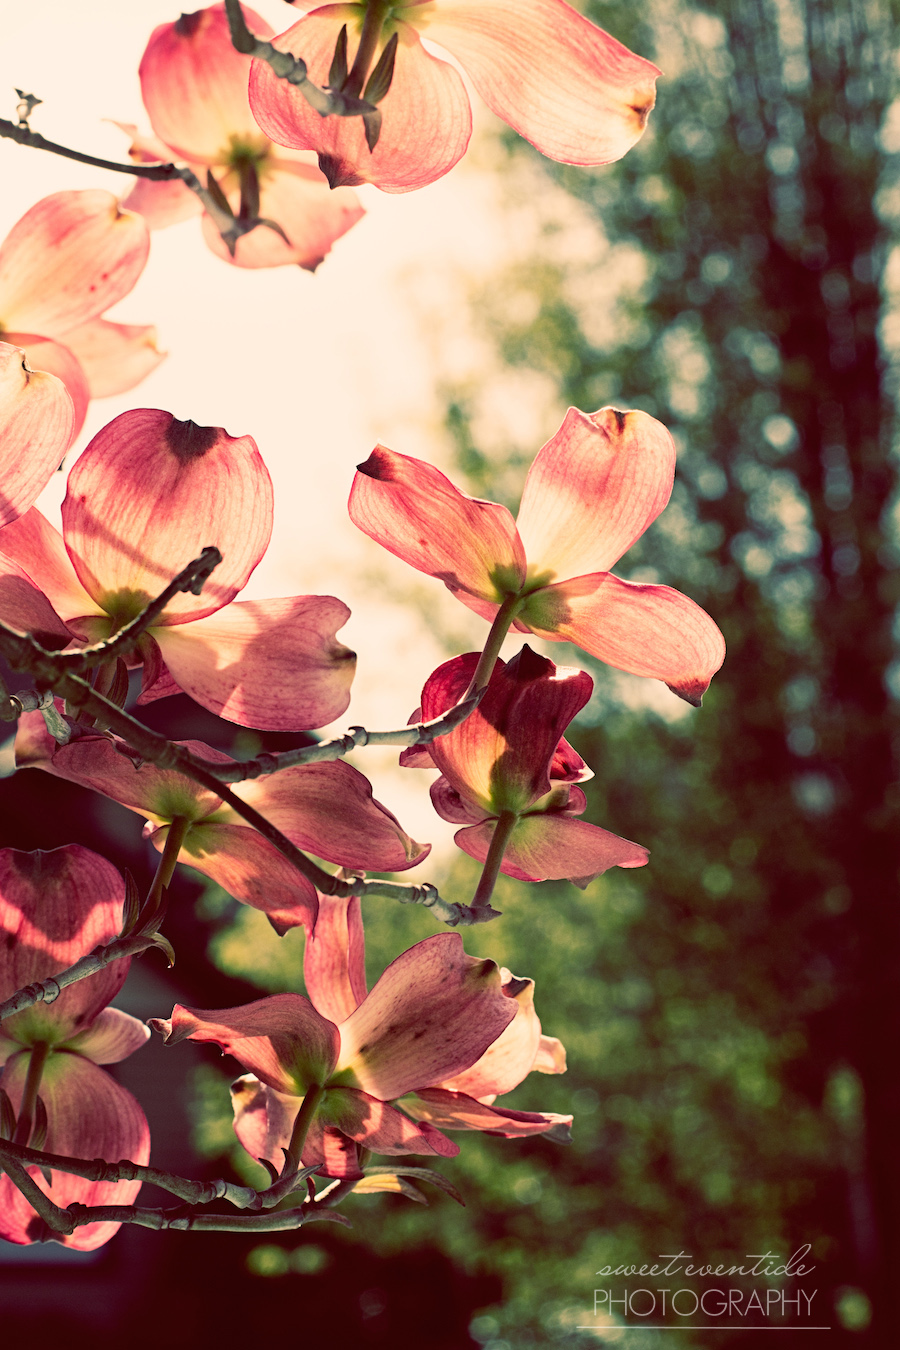 Dogwood blooms in soft light | photograph by Jessica Nichols